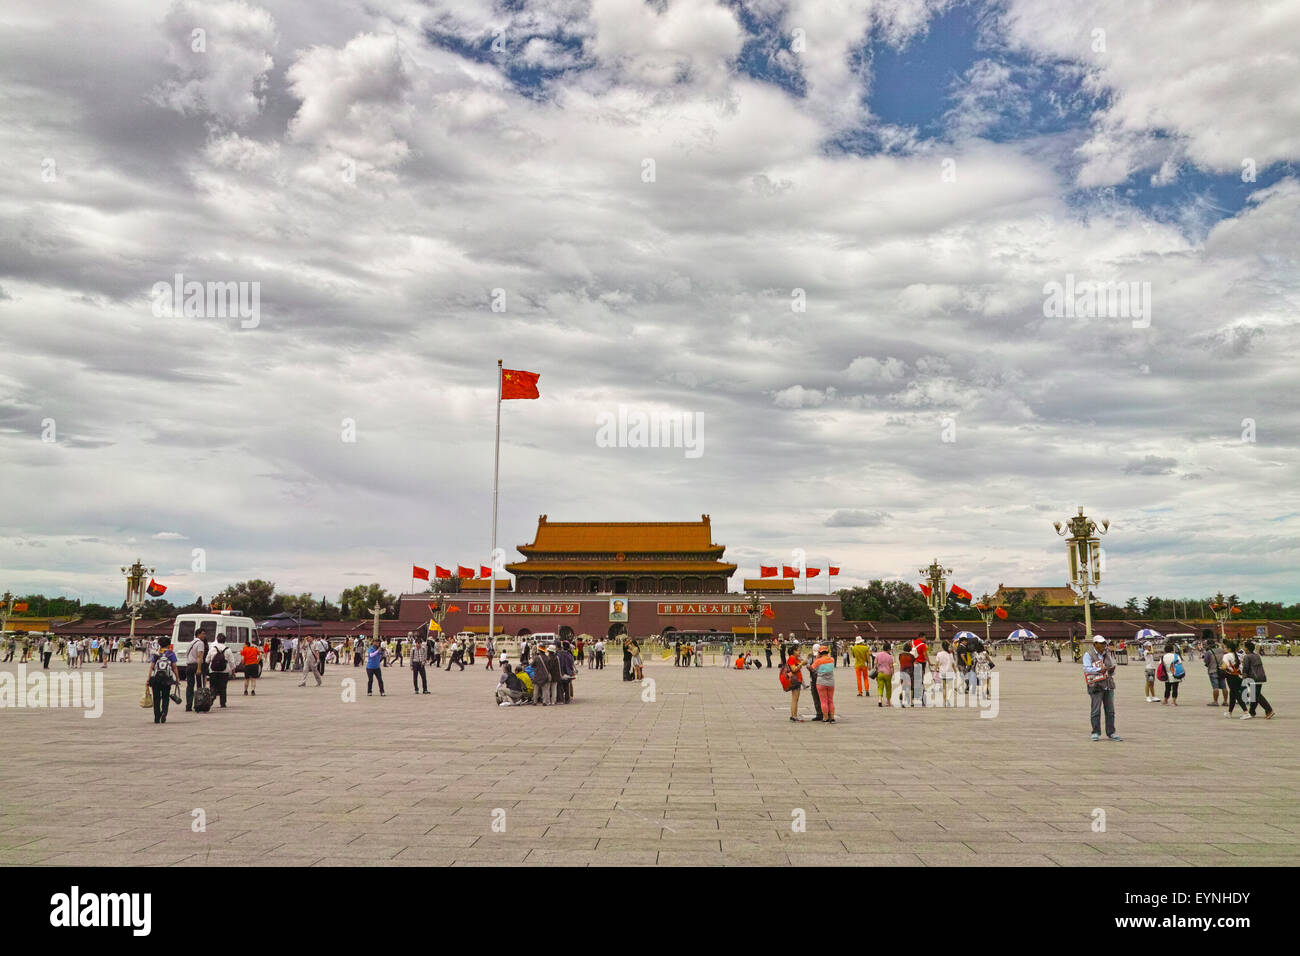 Crowd tourists in Tiananmen Square - Stock Image